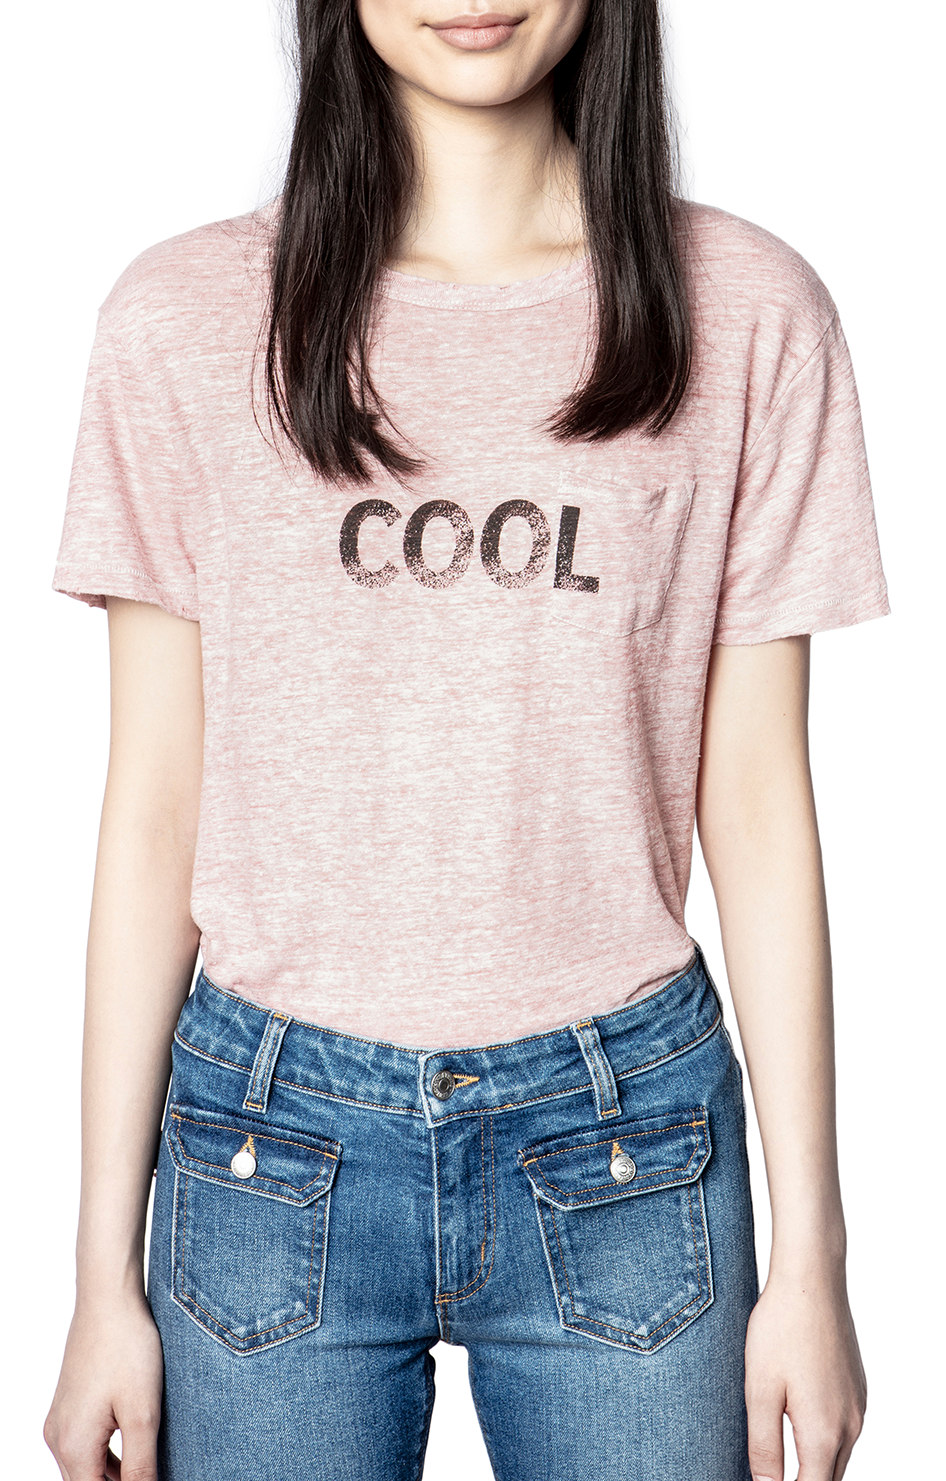 Amber Lin Word T-Shirt - Orchidee